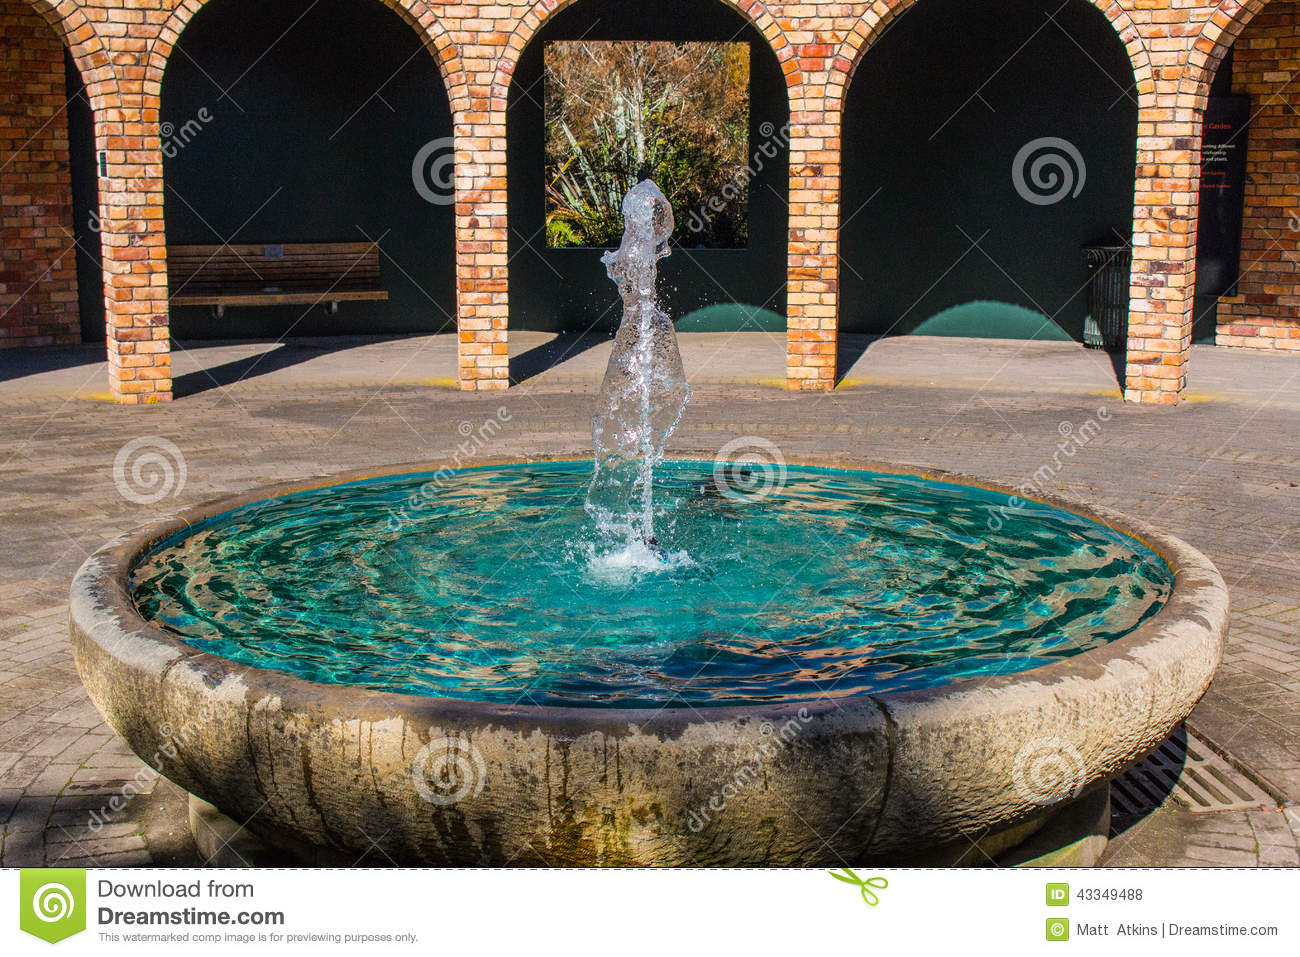 Fountain With Pillars In The Back Gorund Stock Photo Image 43349488